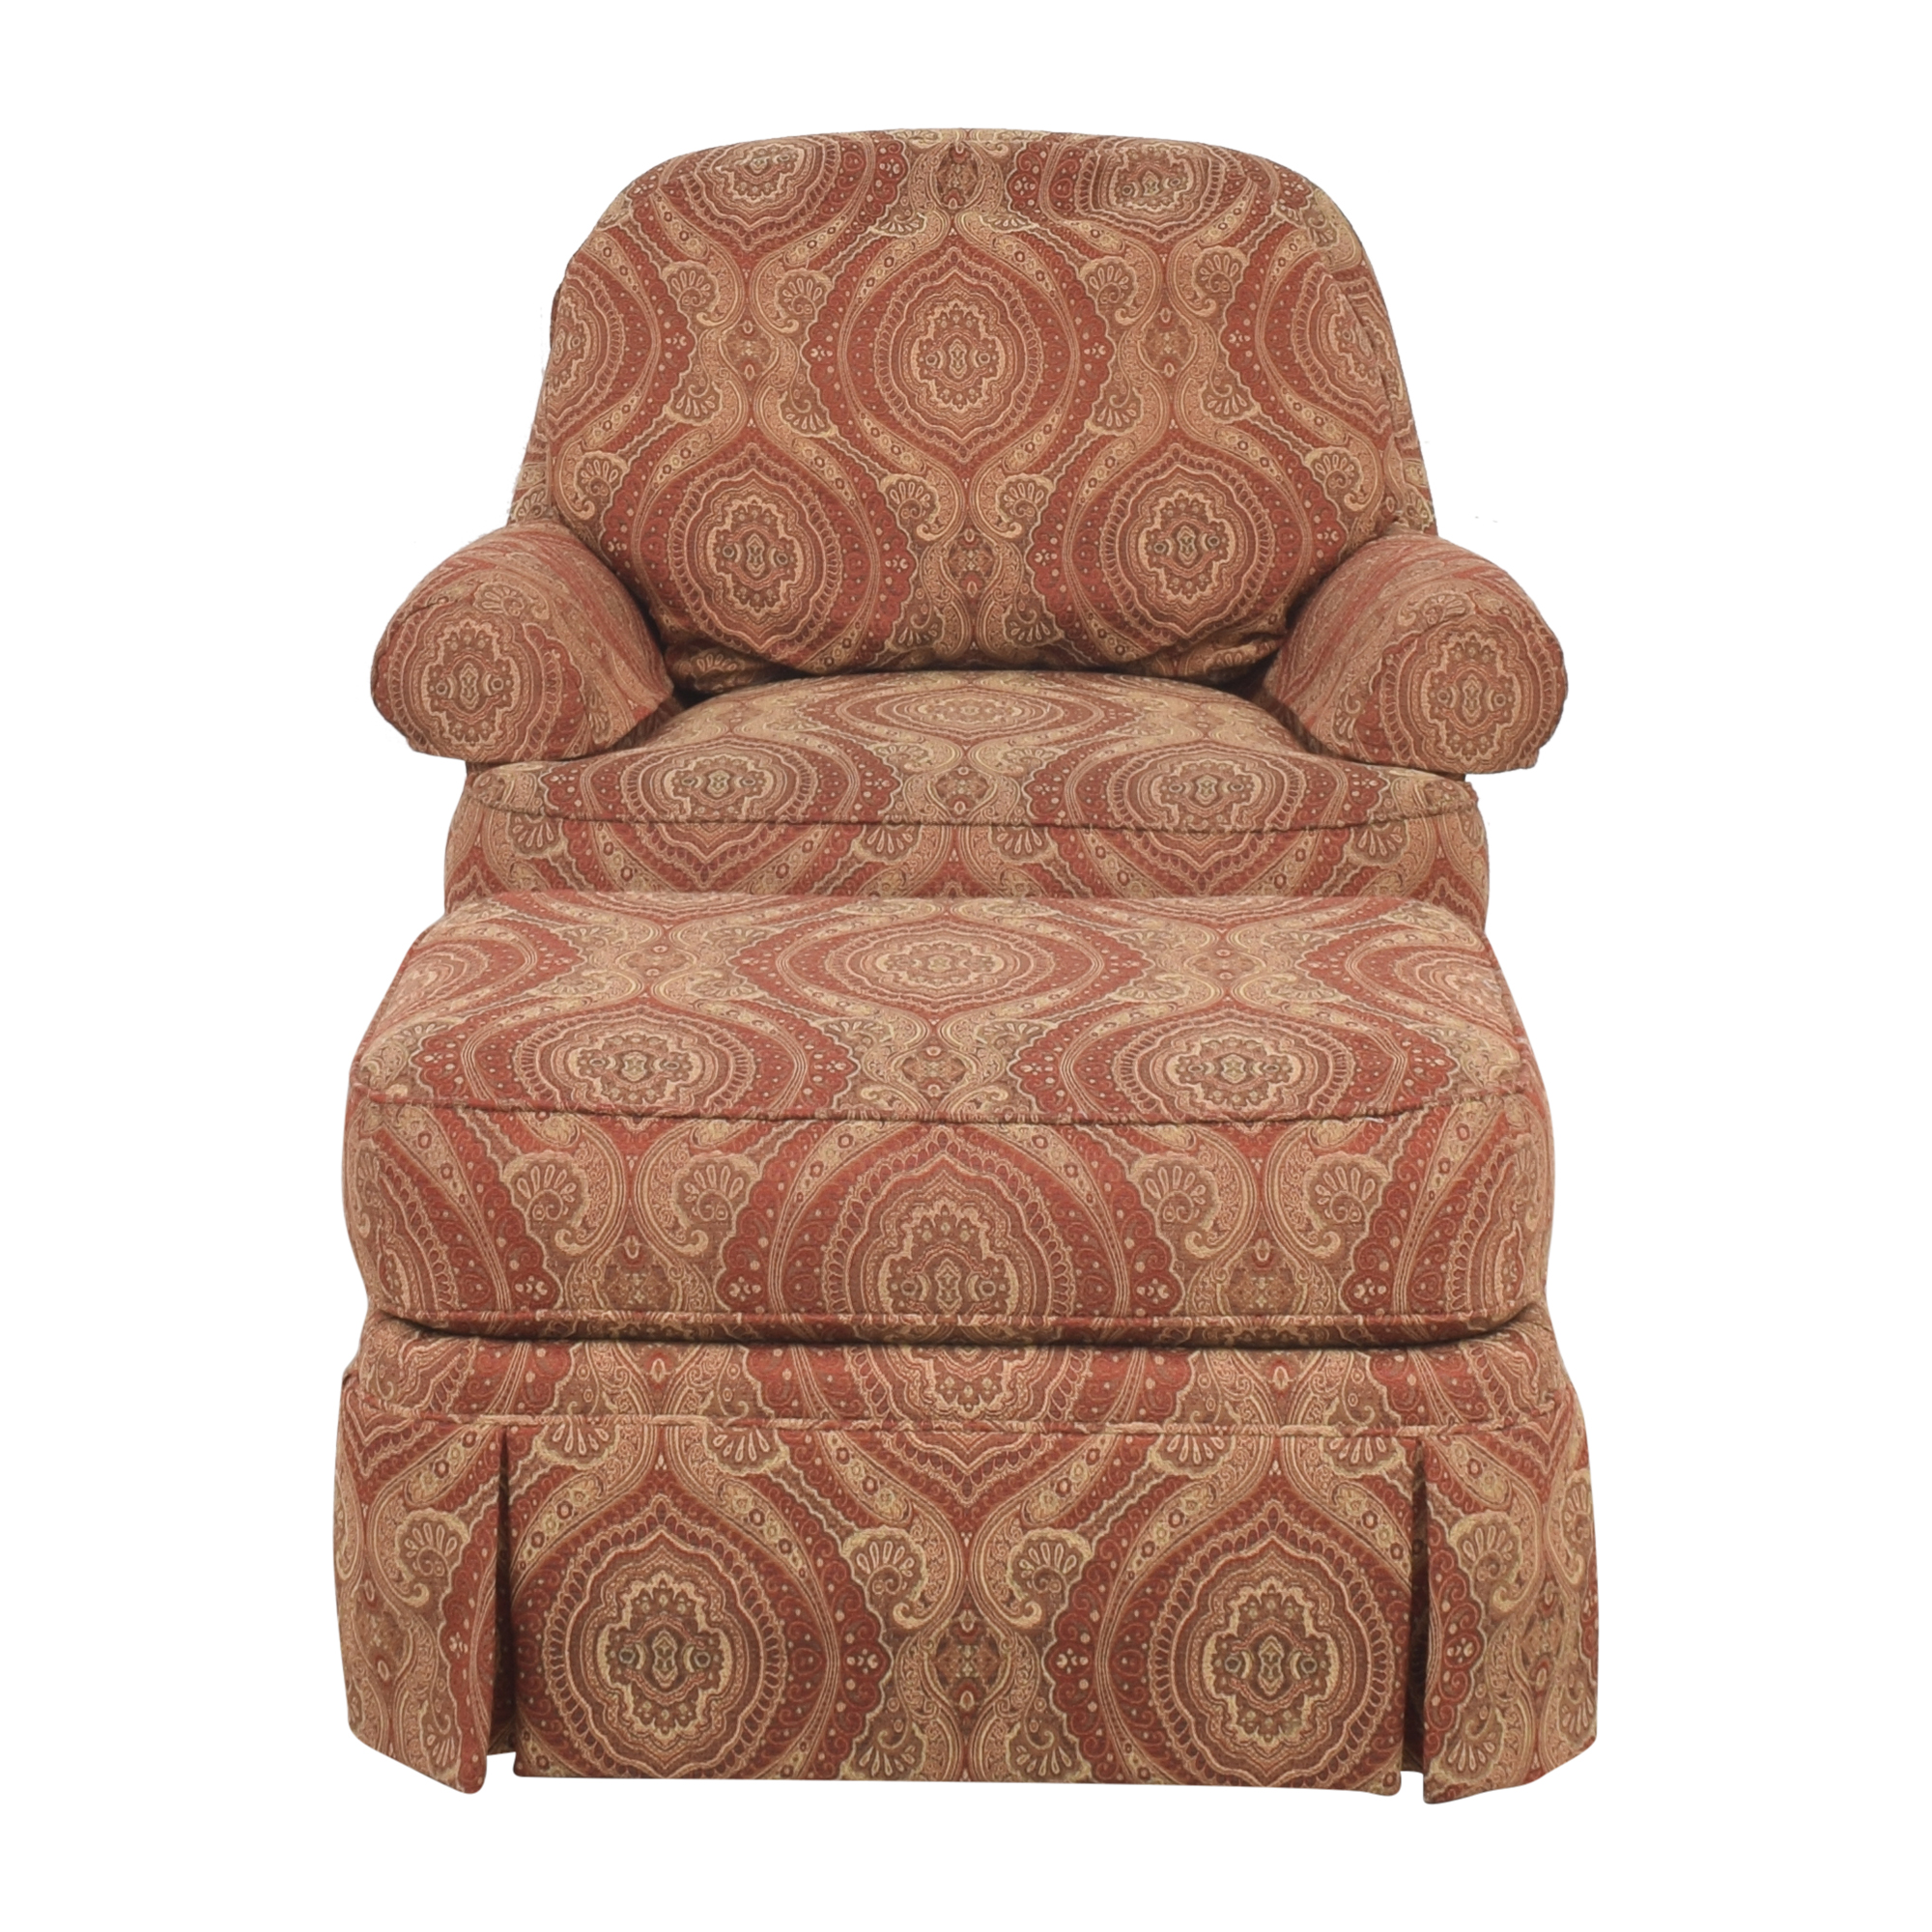 Ethan Allen Ethan Allen Swivel Chair with Ottoman